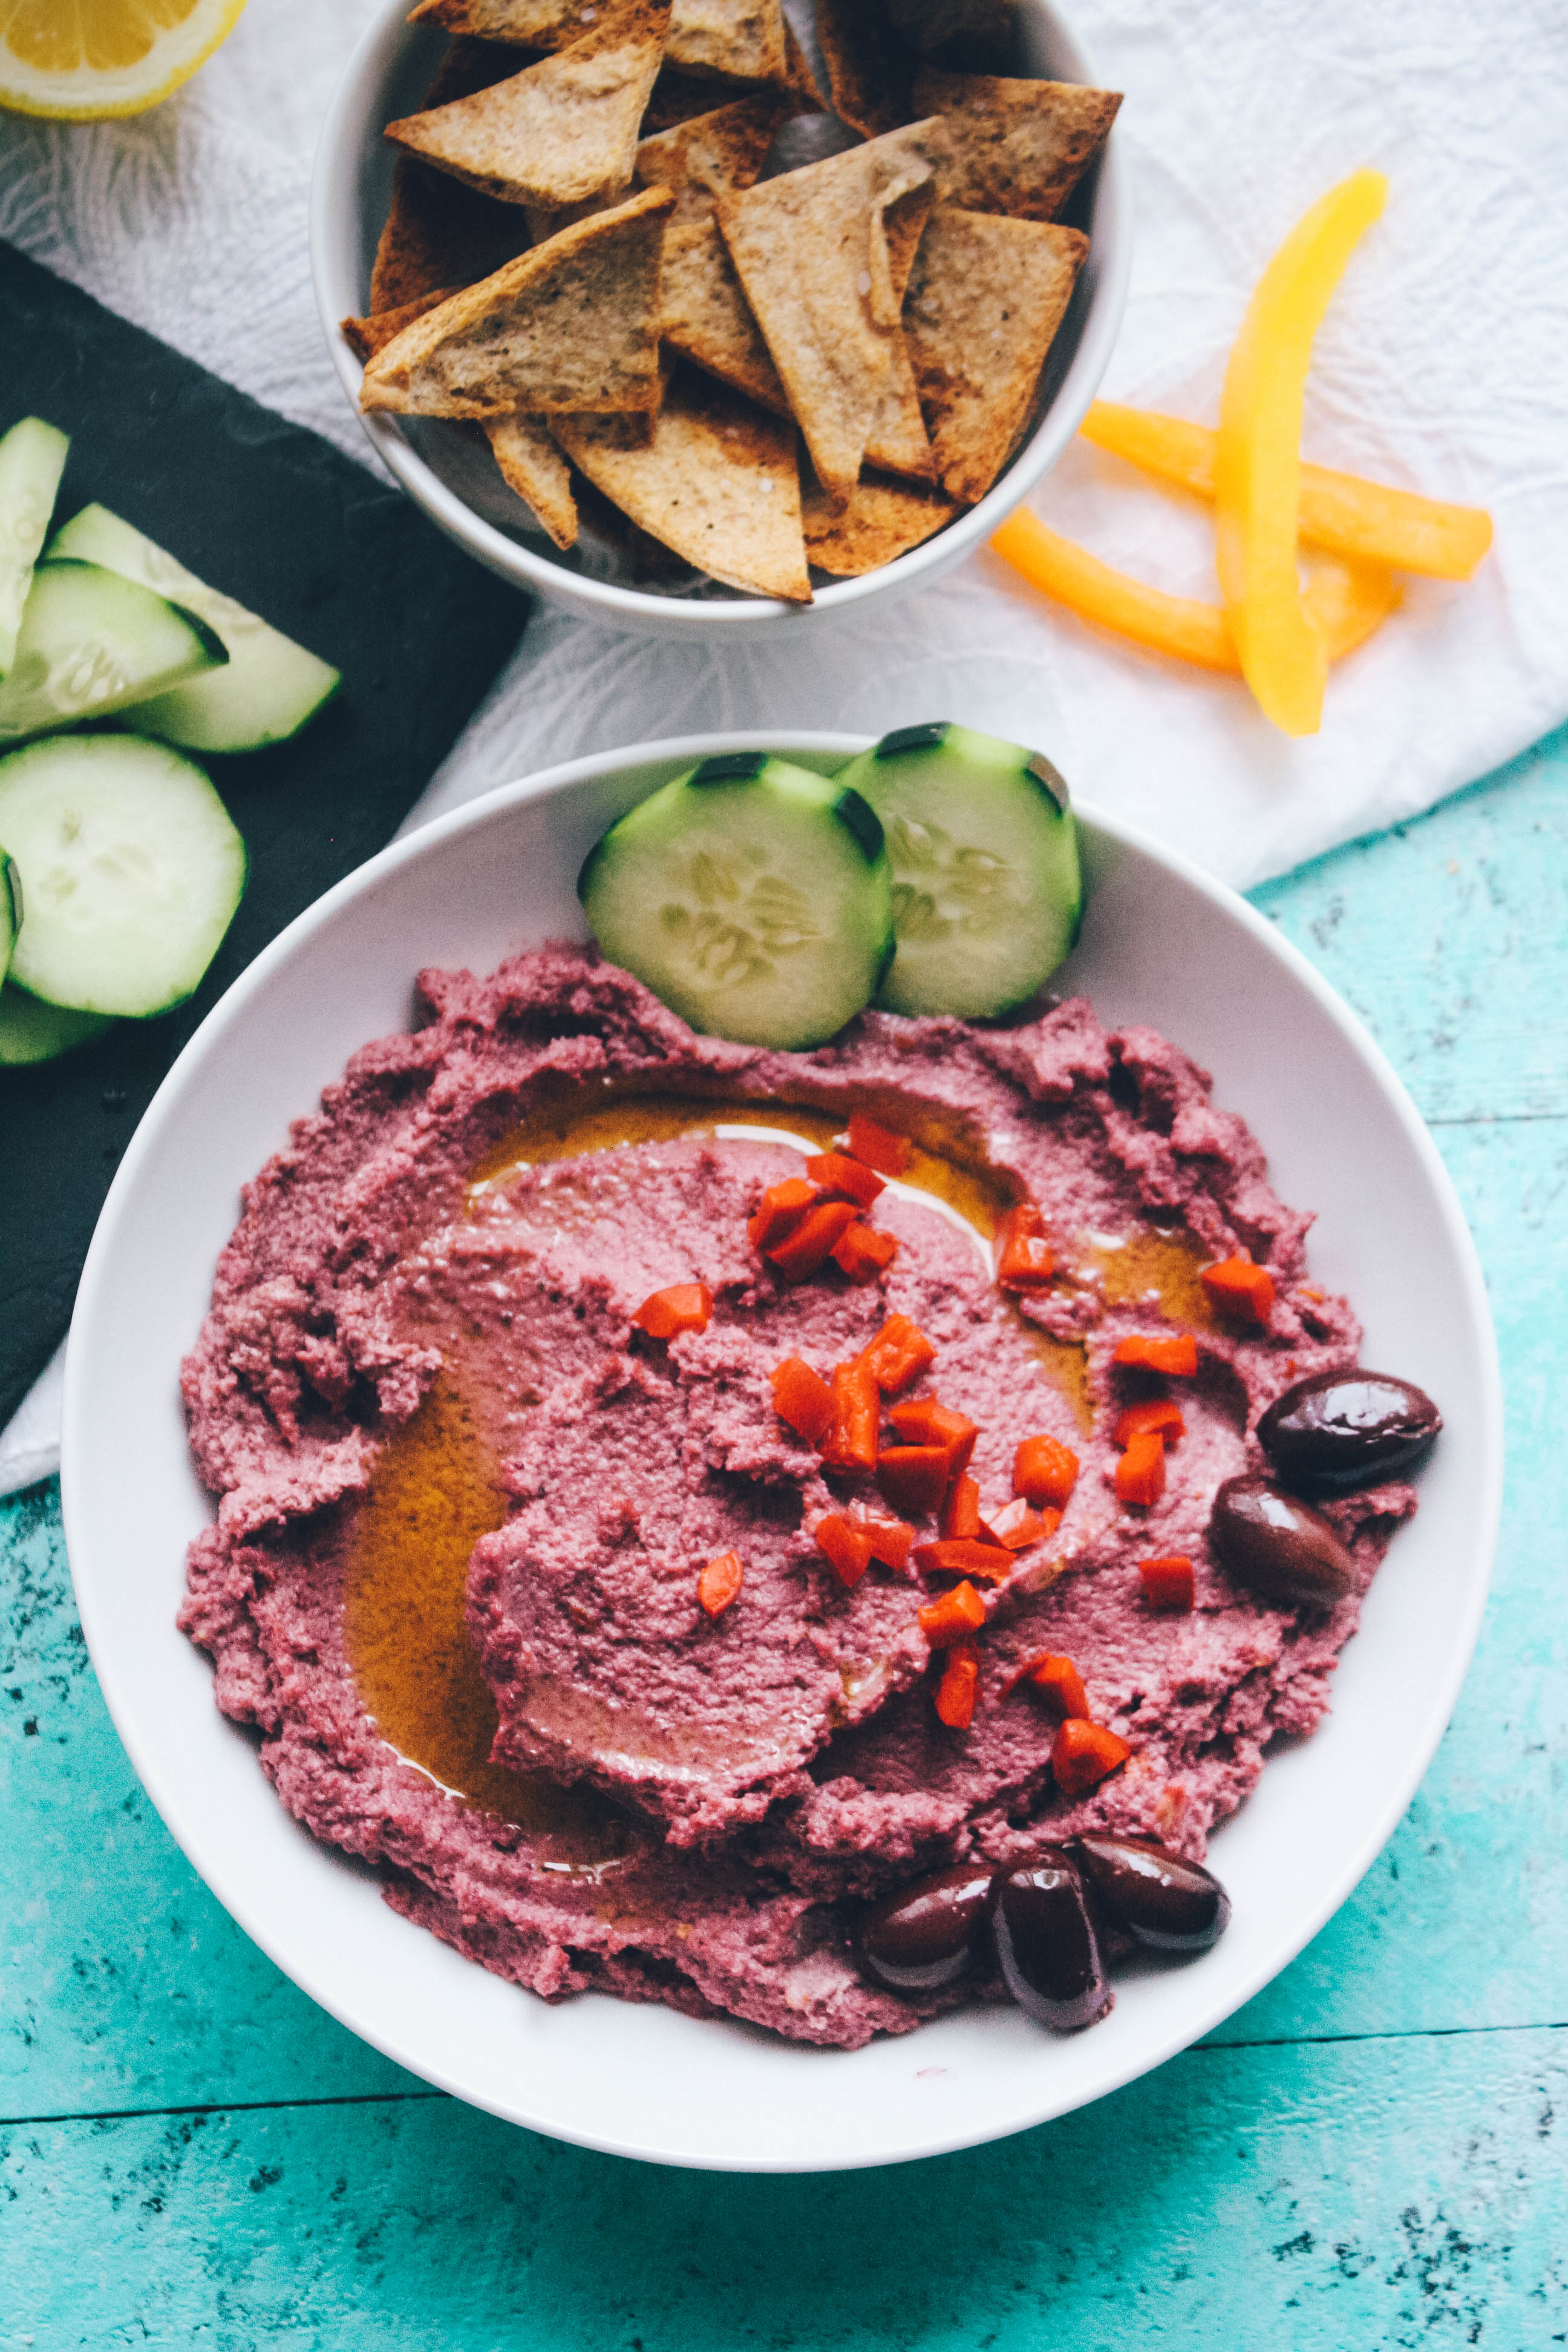 Roasted Garlic and Purple Cauliflower Hummus is a delightful snack or appetizer. Roasted Garlic and Purple Cauliflower Hummus is great if you're looking for a lower-carb snack!